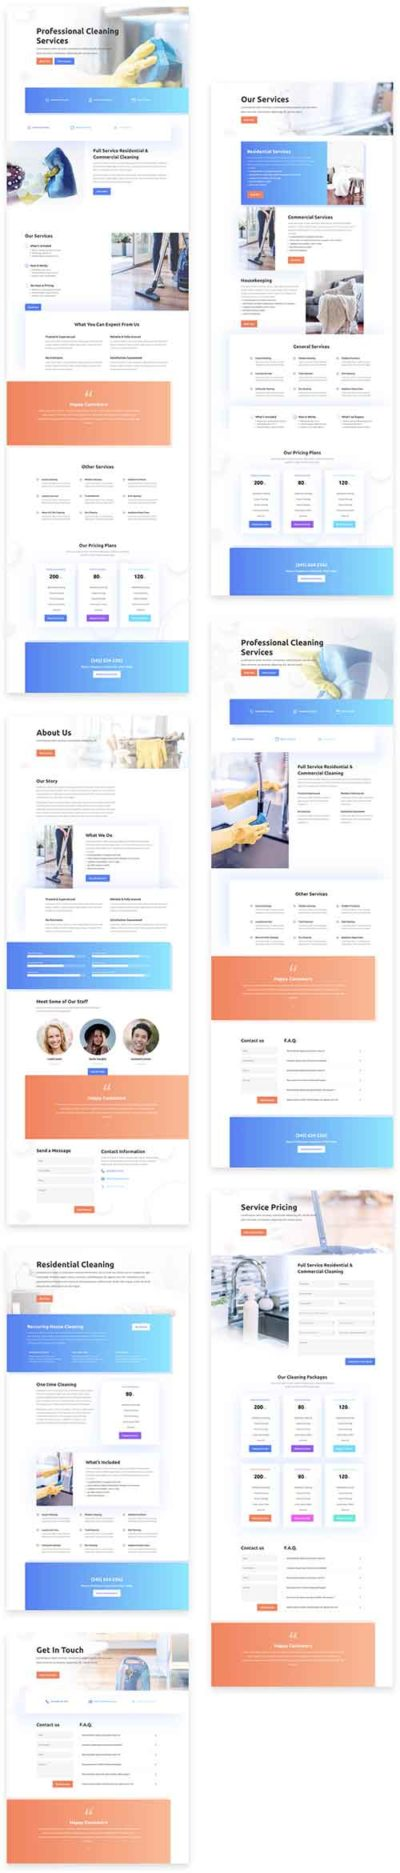 free cleaners layout pack